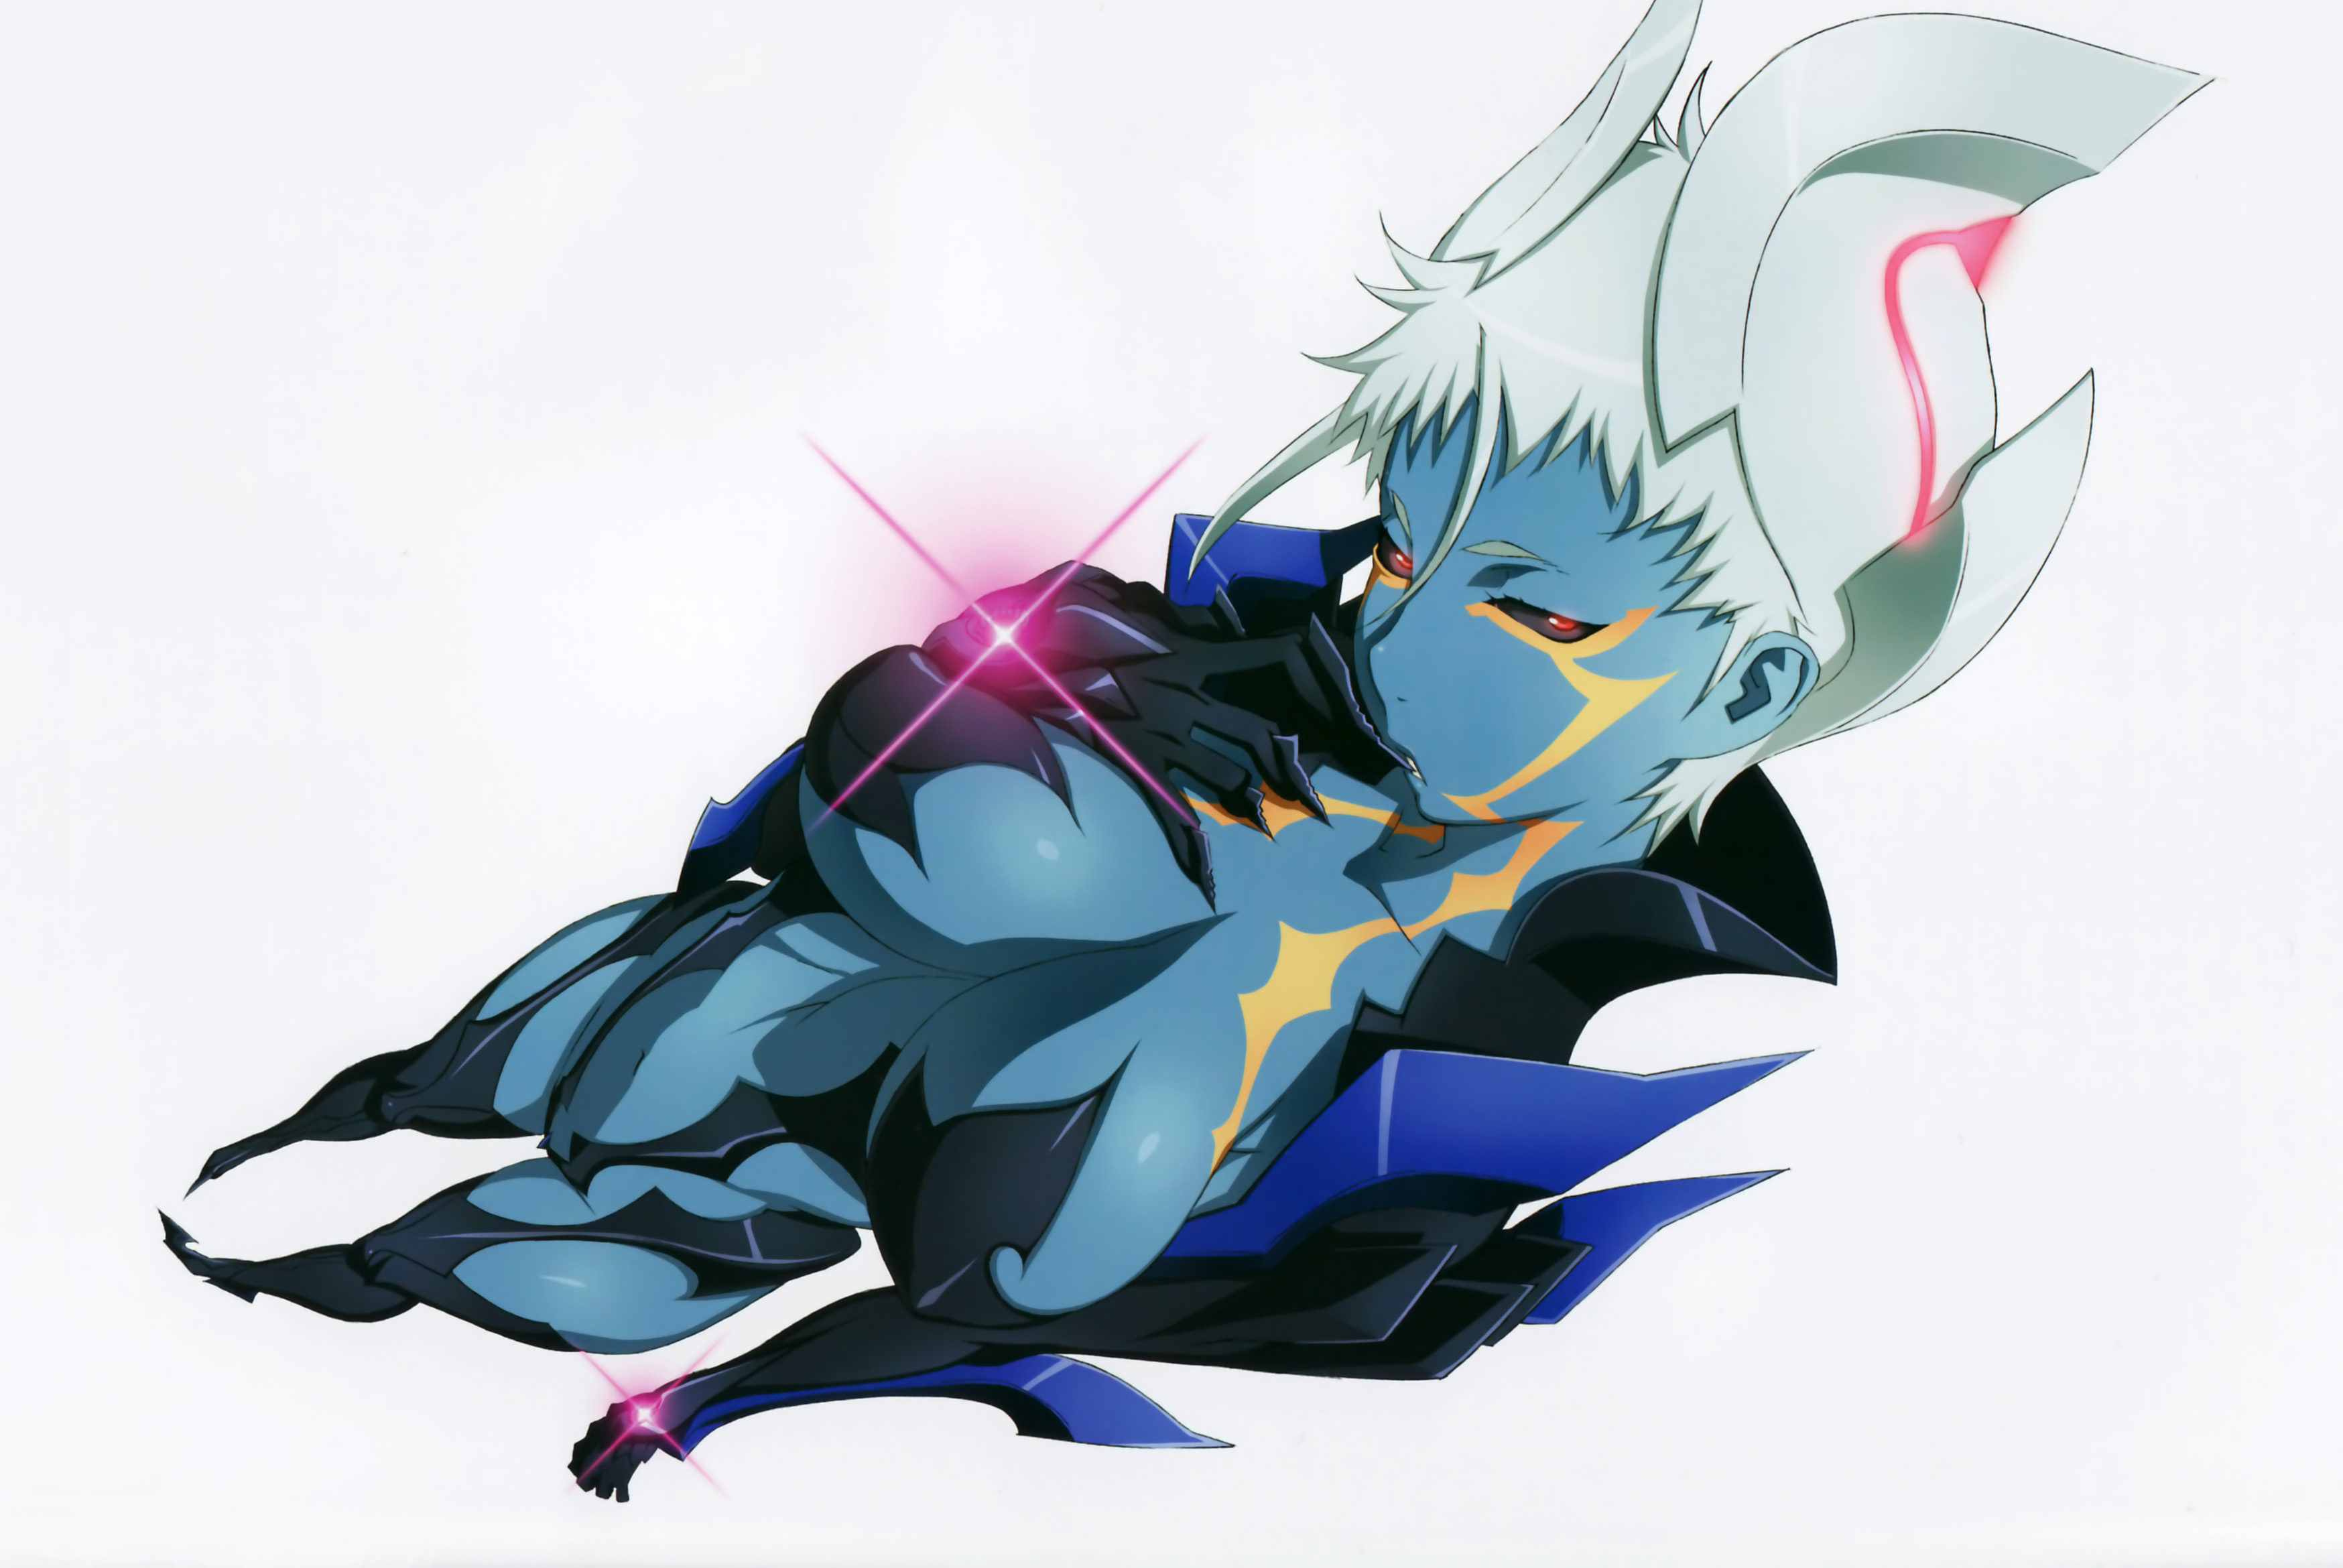 Witchblade zerochan anime image board